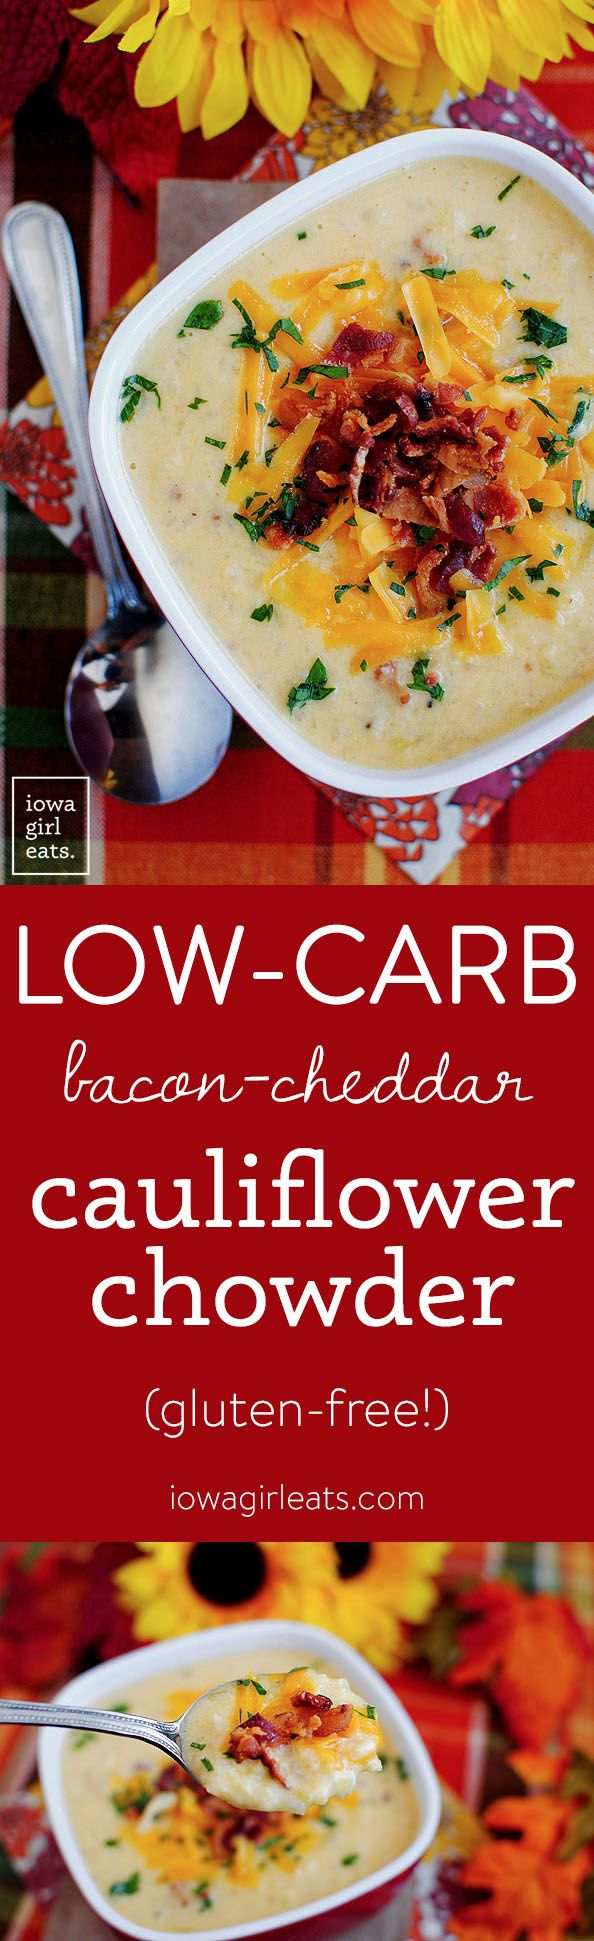 Gluten-Free Bacon-Cheddar Cauliflower Chowder is a lower-carb alternative to Baked Potato Soup! #glutenfree | iowagirleats.com